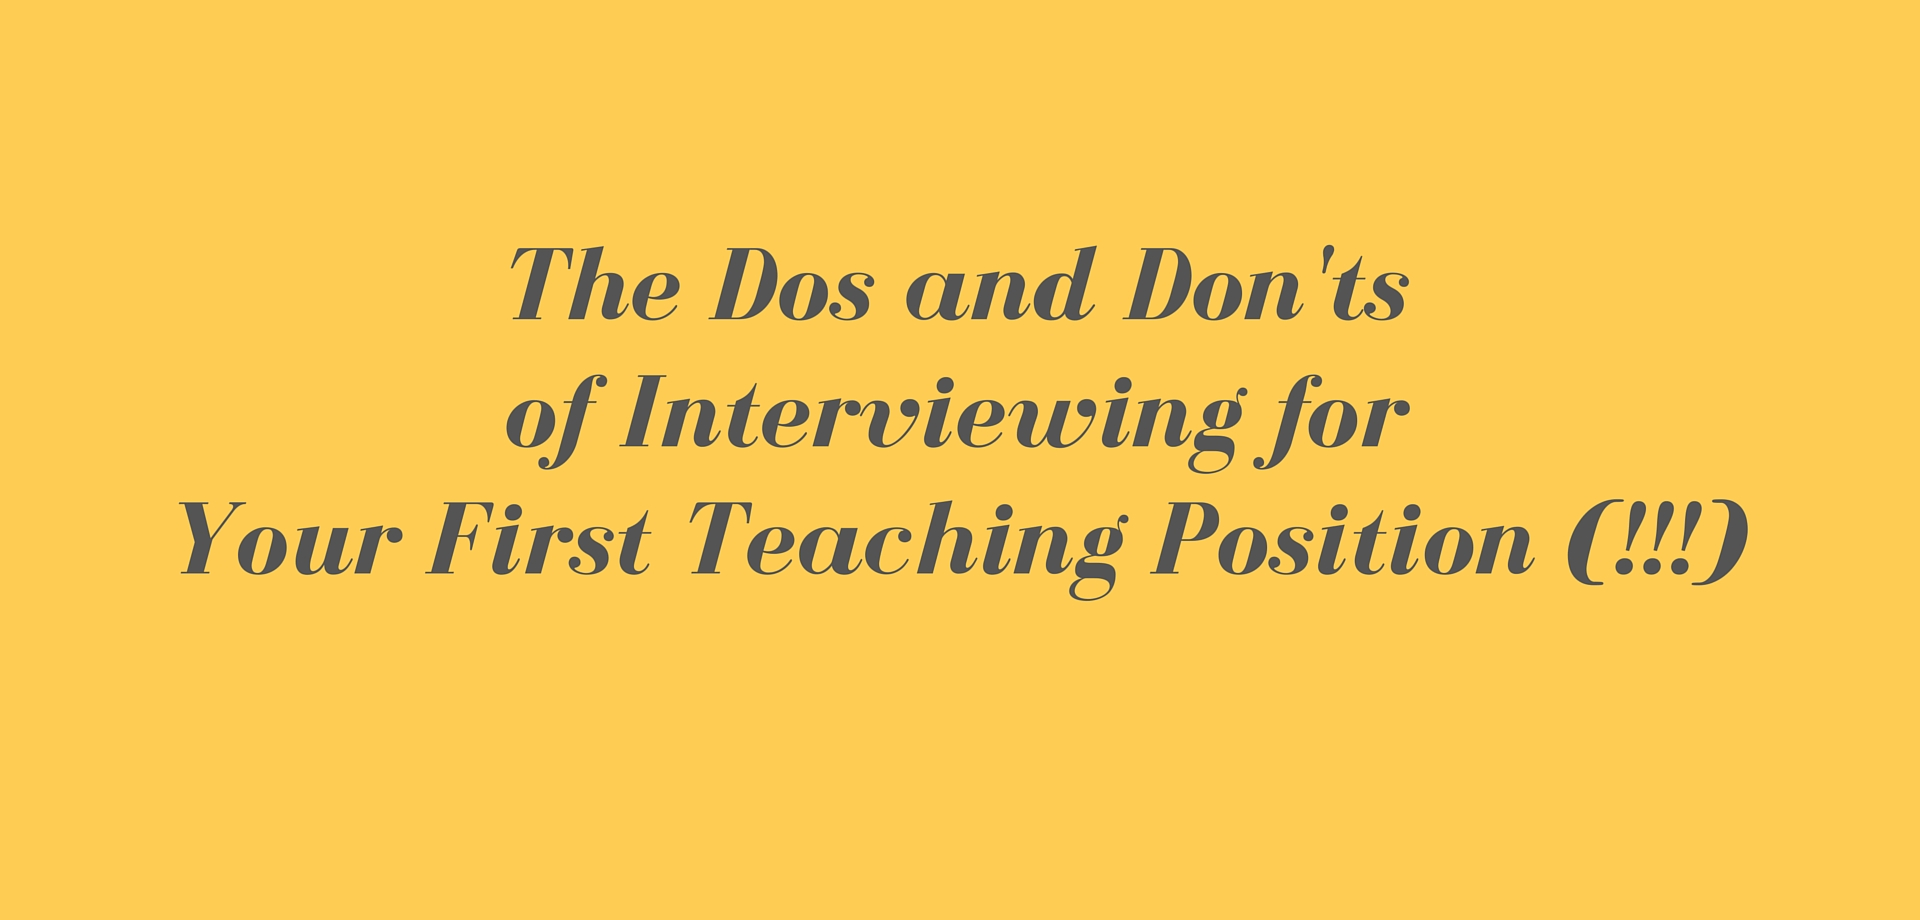 dos and don ts of interviewing